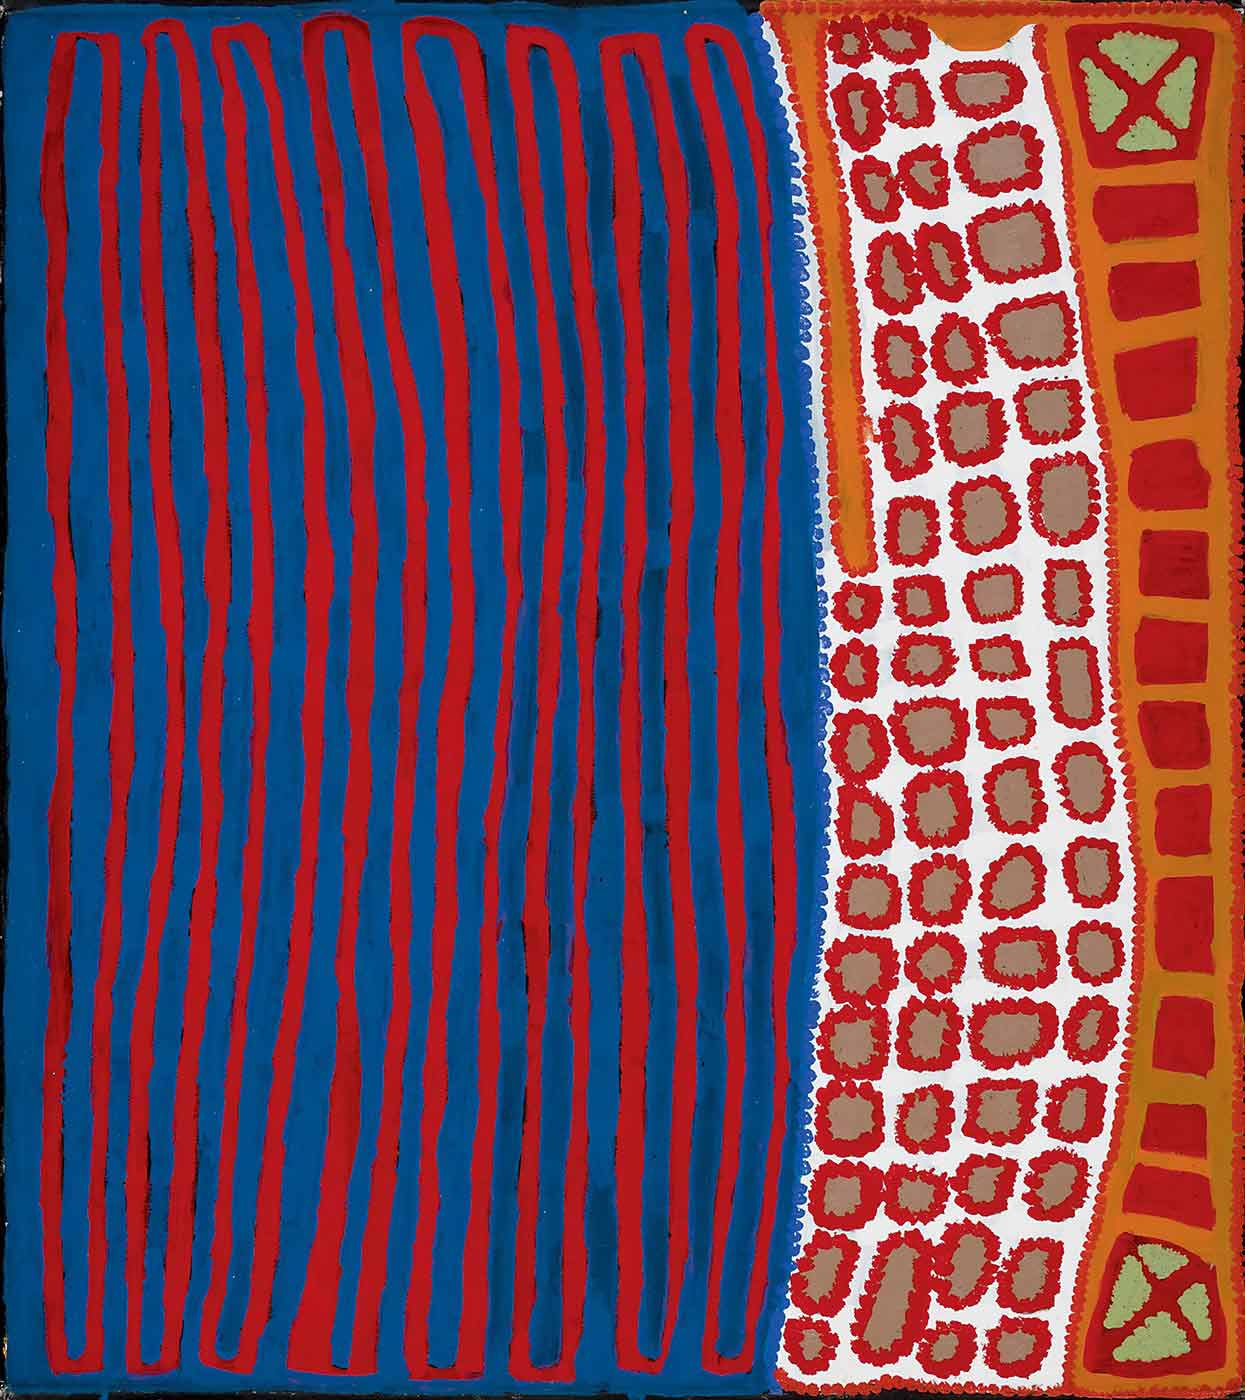 A painting on canvas with a vertical blue and red stripe-like section on the left, and vertical lines of squares on the right. The left side of the painting has long thin oblong outlines in red on a blue background. The middle of the painting has three and a half vertical lines of grey squares outlined with red dots on a white background On the right there is a vertical line of red squares on an orange background with a green square decorated with a red